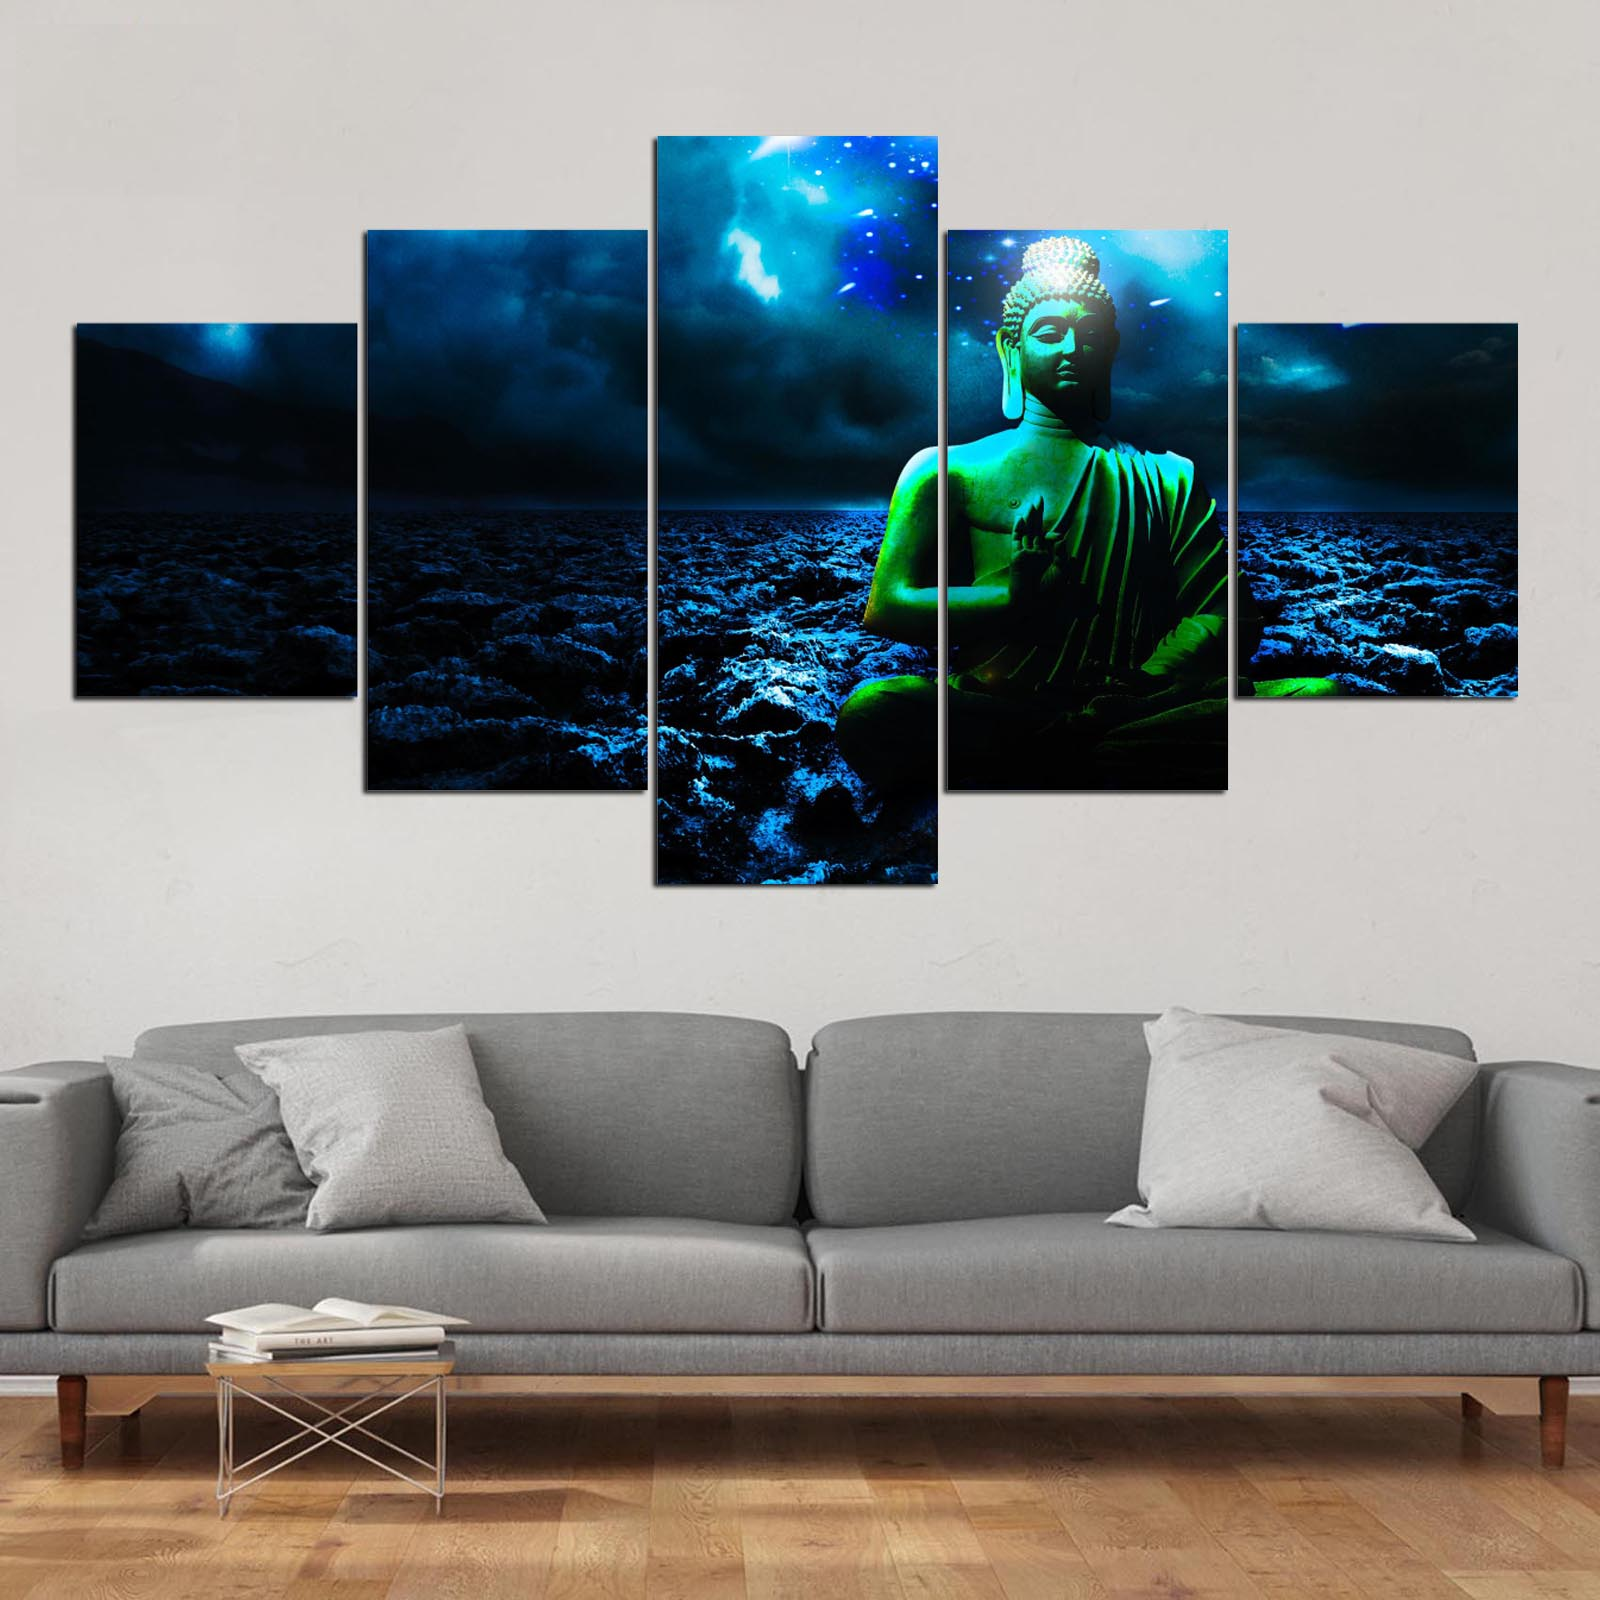 3-4-5 piese Buddha Peace Painting pe Canvas Decoration Room Print - Decoratiune interioara